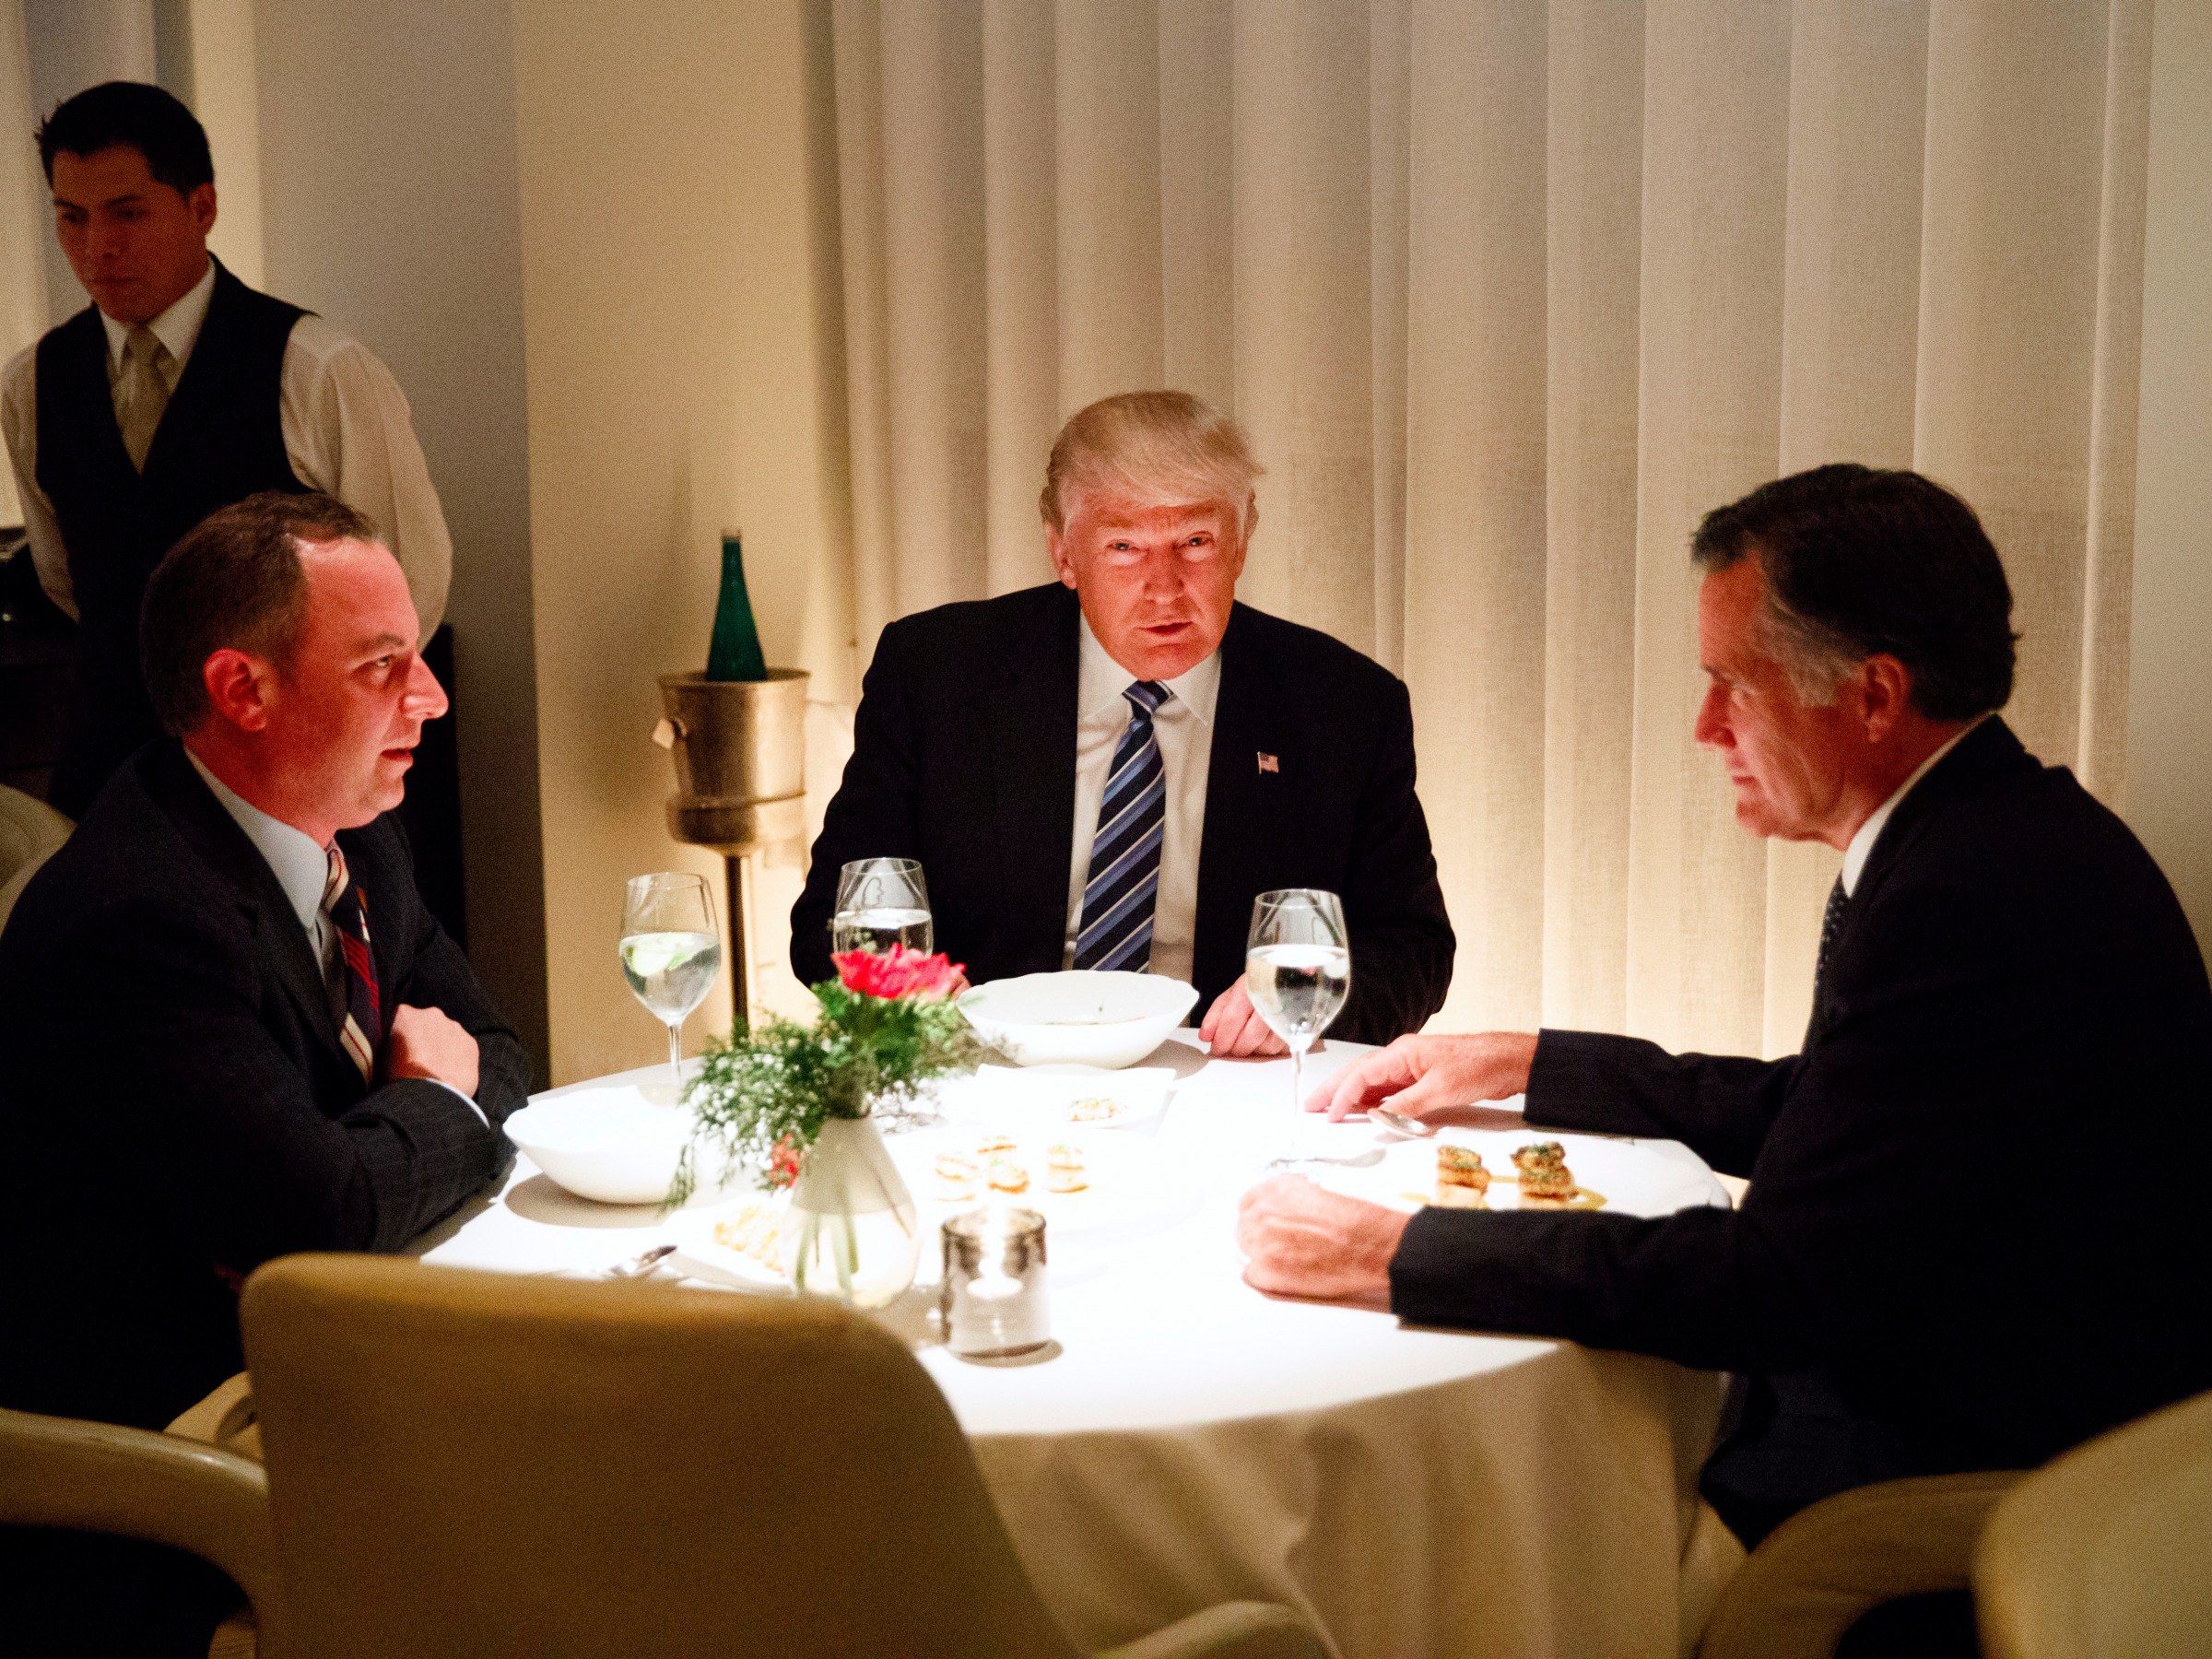 Trump Romney Dinner  What it s like to eat at the $138 a person restaurant